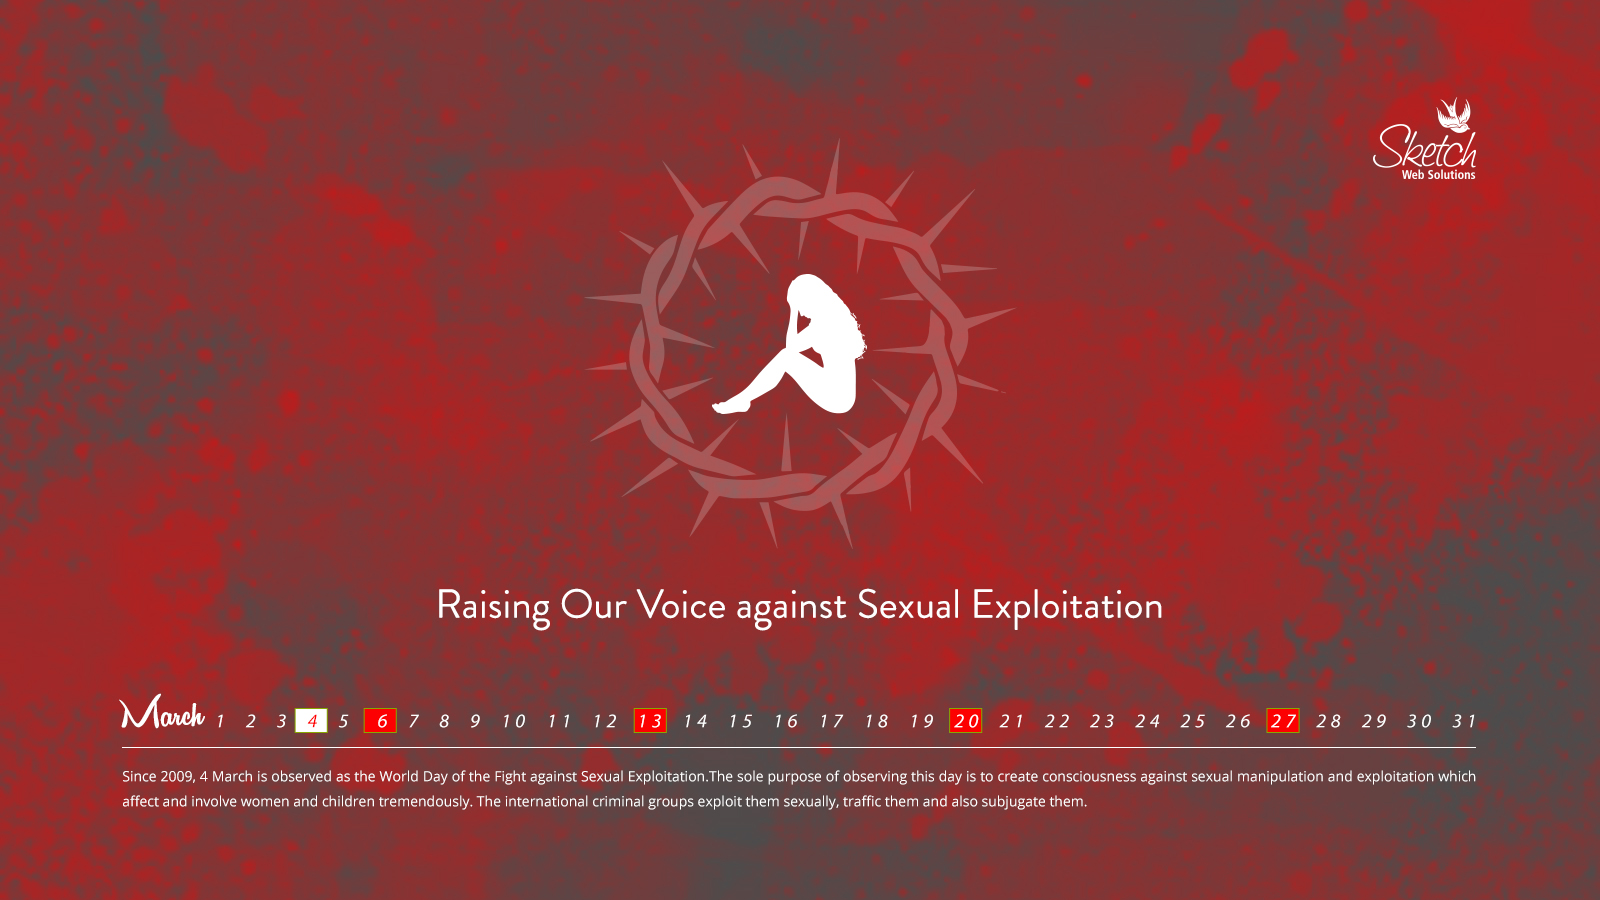 against Sexual Exploitation